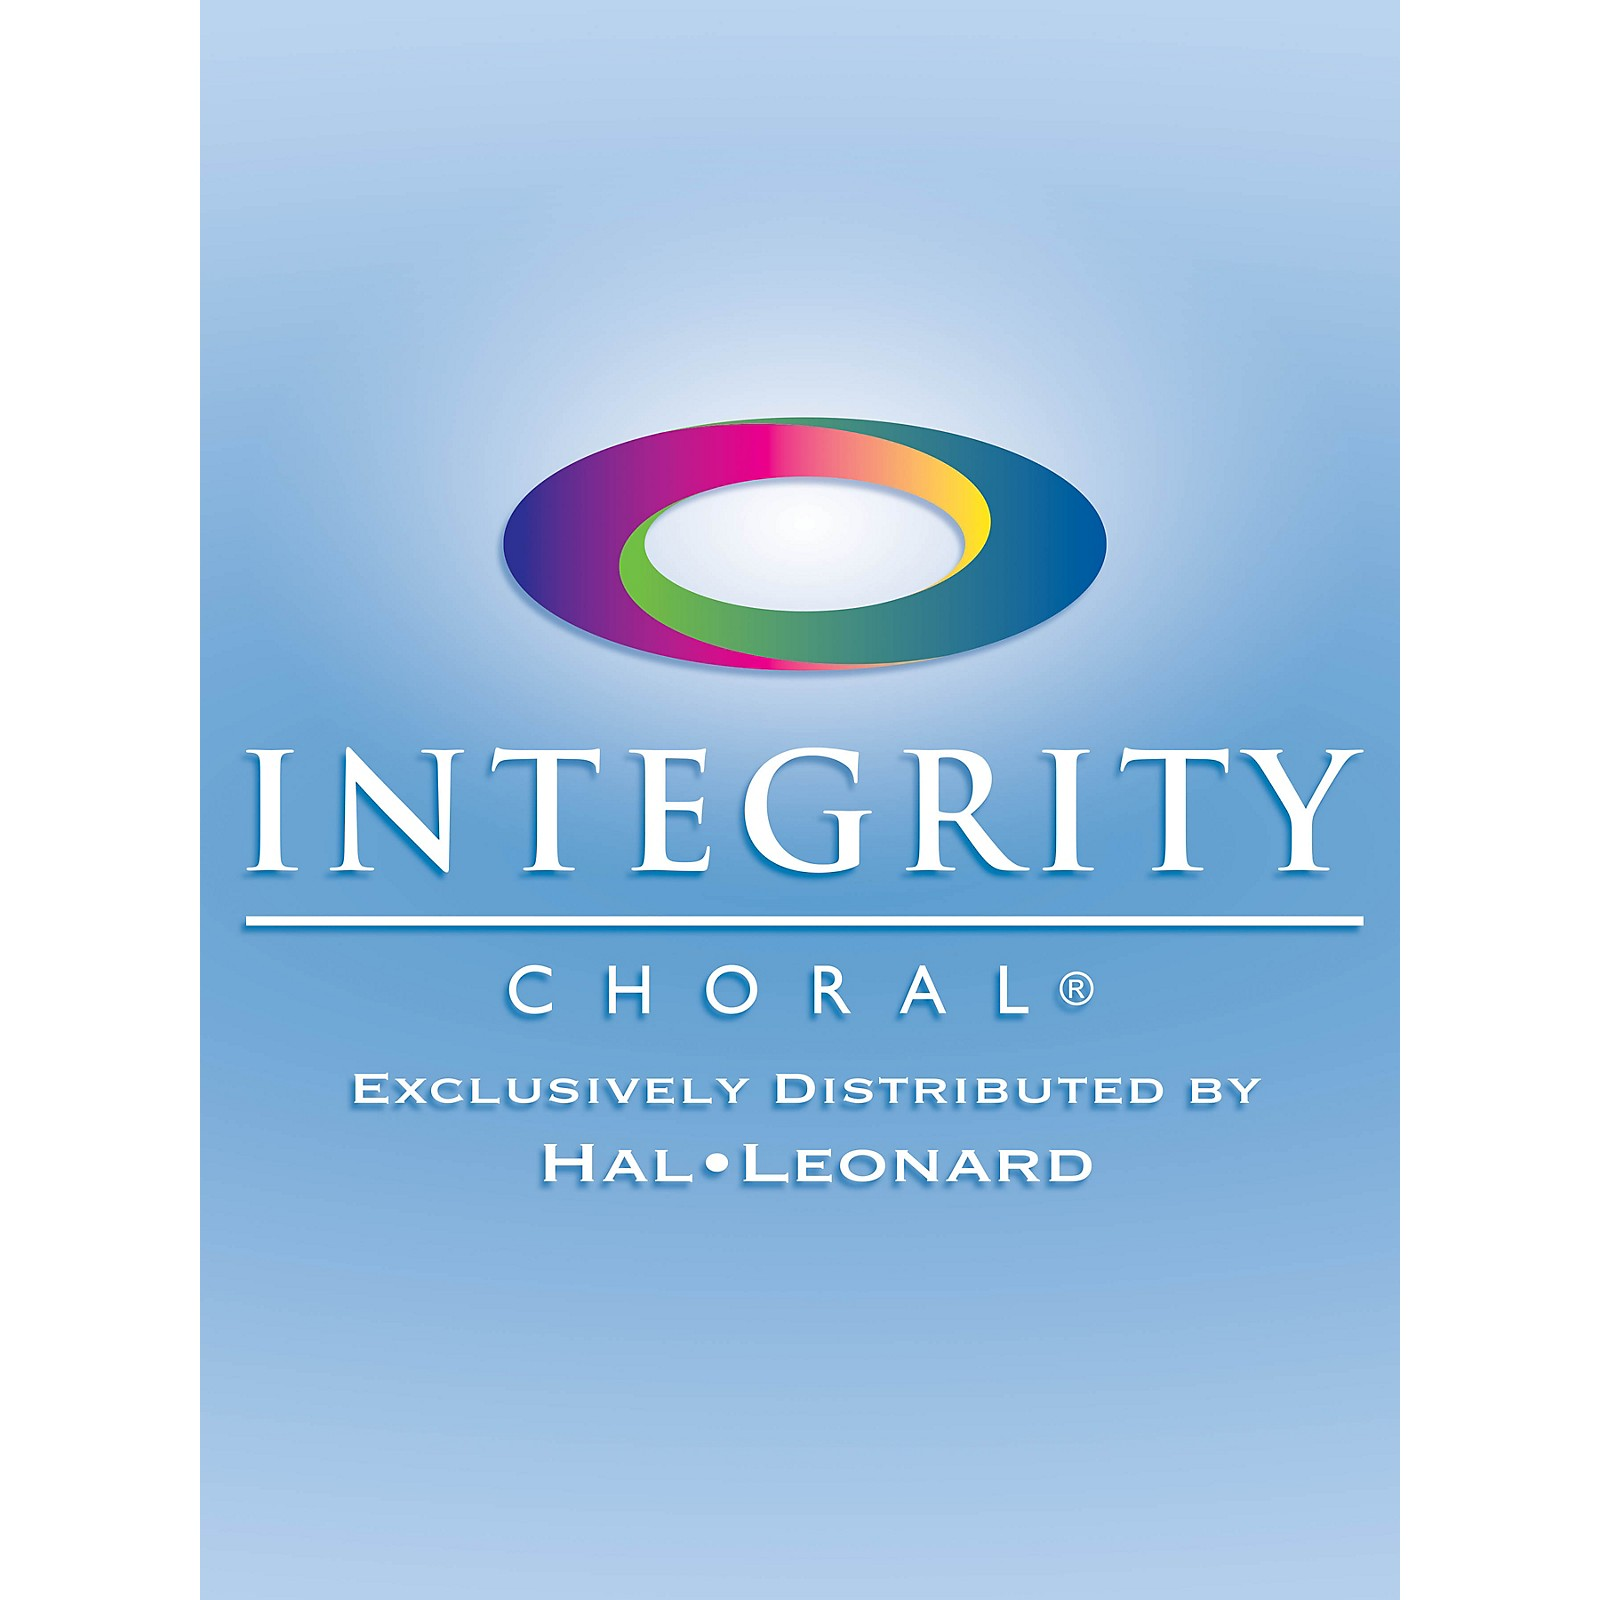 Integrity Music Blessed Be the Lord God Almighty (Forever and Ever) (goes with 08746017) Orchestra by J. Daniel Smith